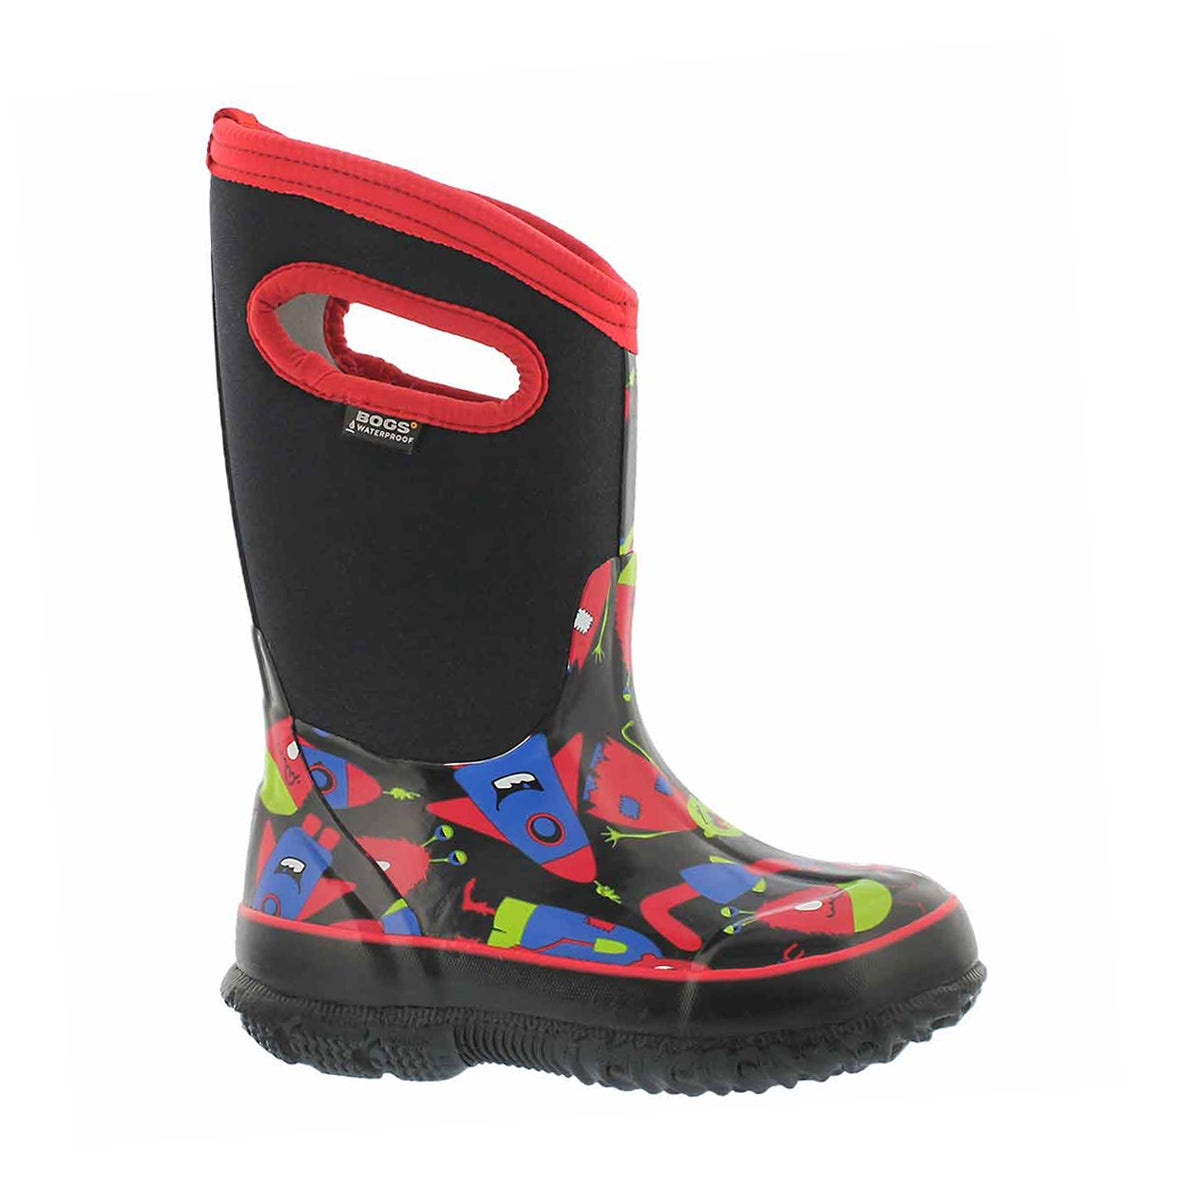 Boys' CLASSIC MONSTER black multi wtpf boots